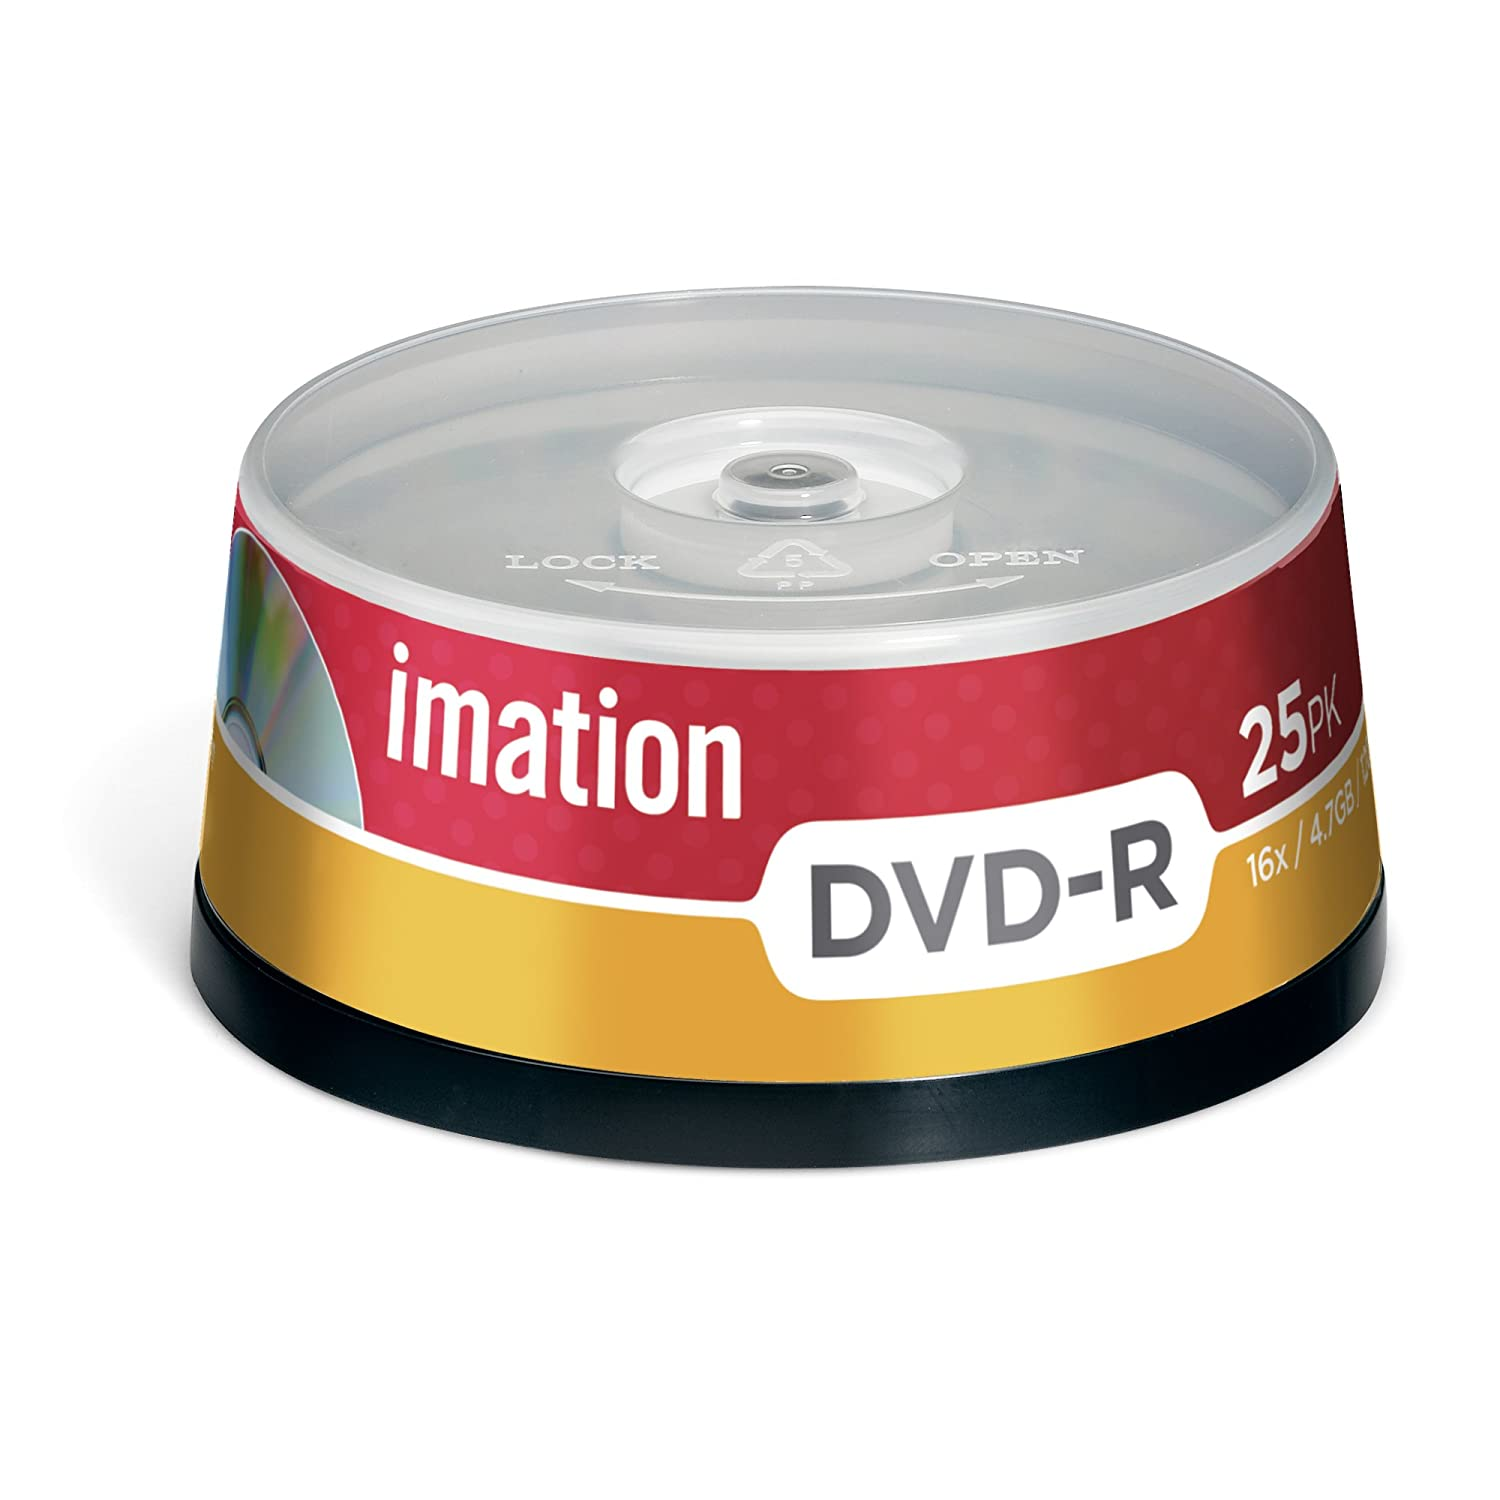 Verbatim dvd rw 4 7gb 4x with branded surface 30pk spindle 4 7gb - Imation Dvd R Inkjet Printable 16x 4 7gb 30pk Spindle Amazon Co Uk Computers Accessories